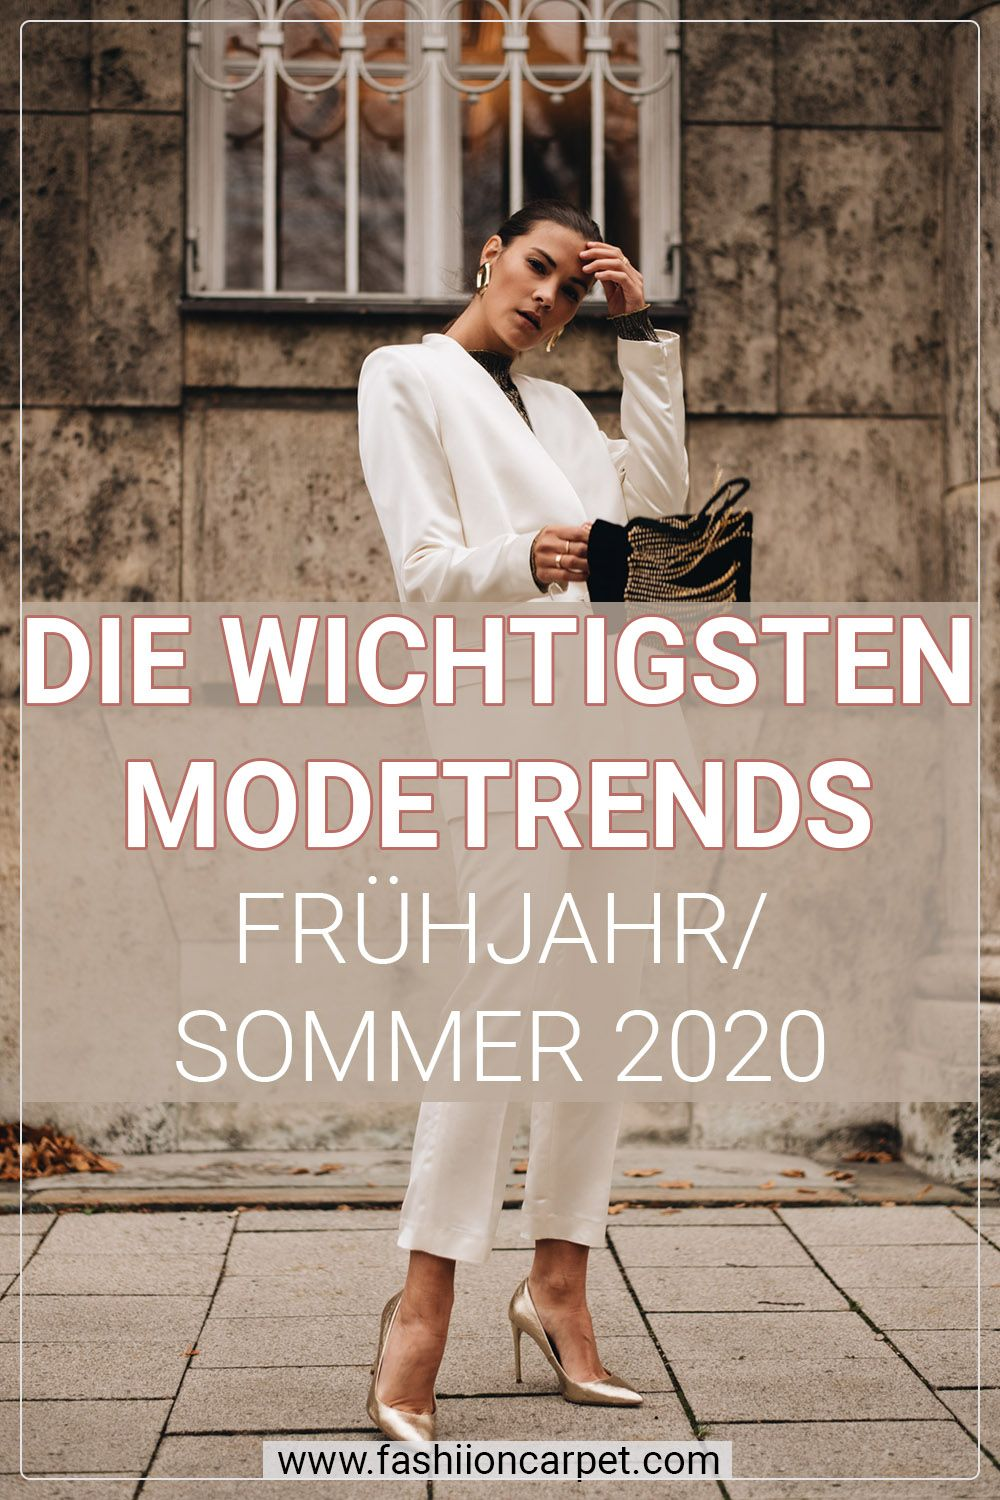 Fashion Forecast: Modetrends 2020